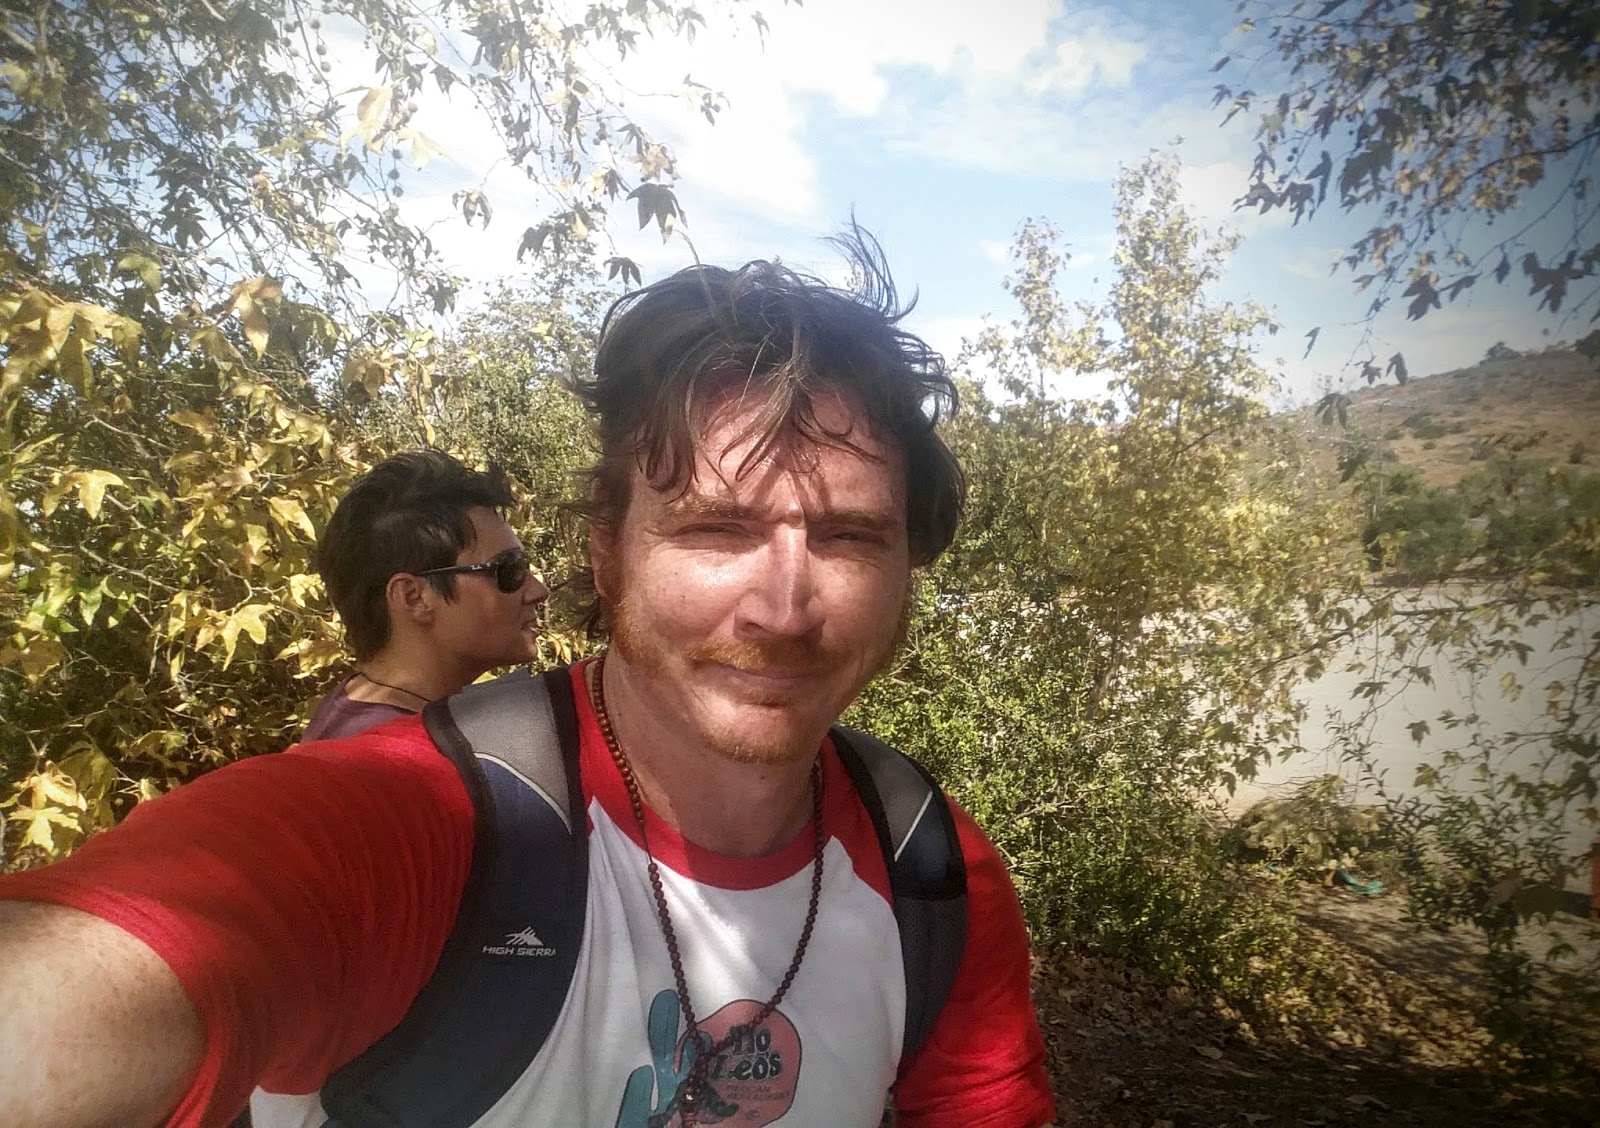 White guy sweat from hiking takes a selfie